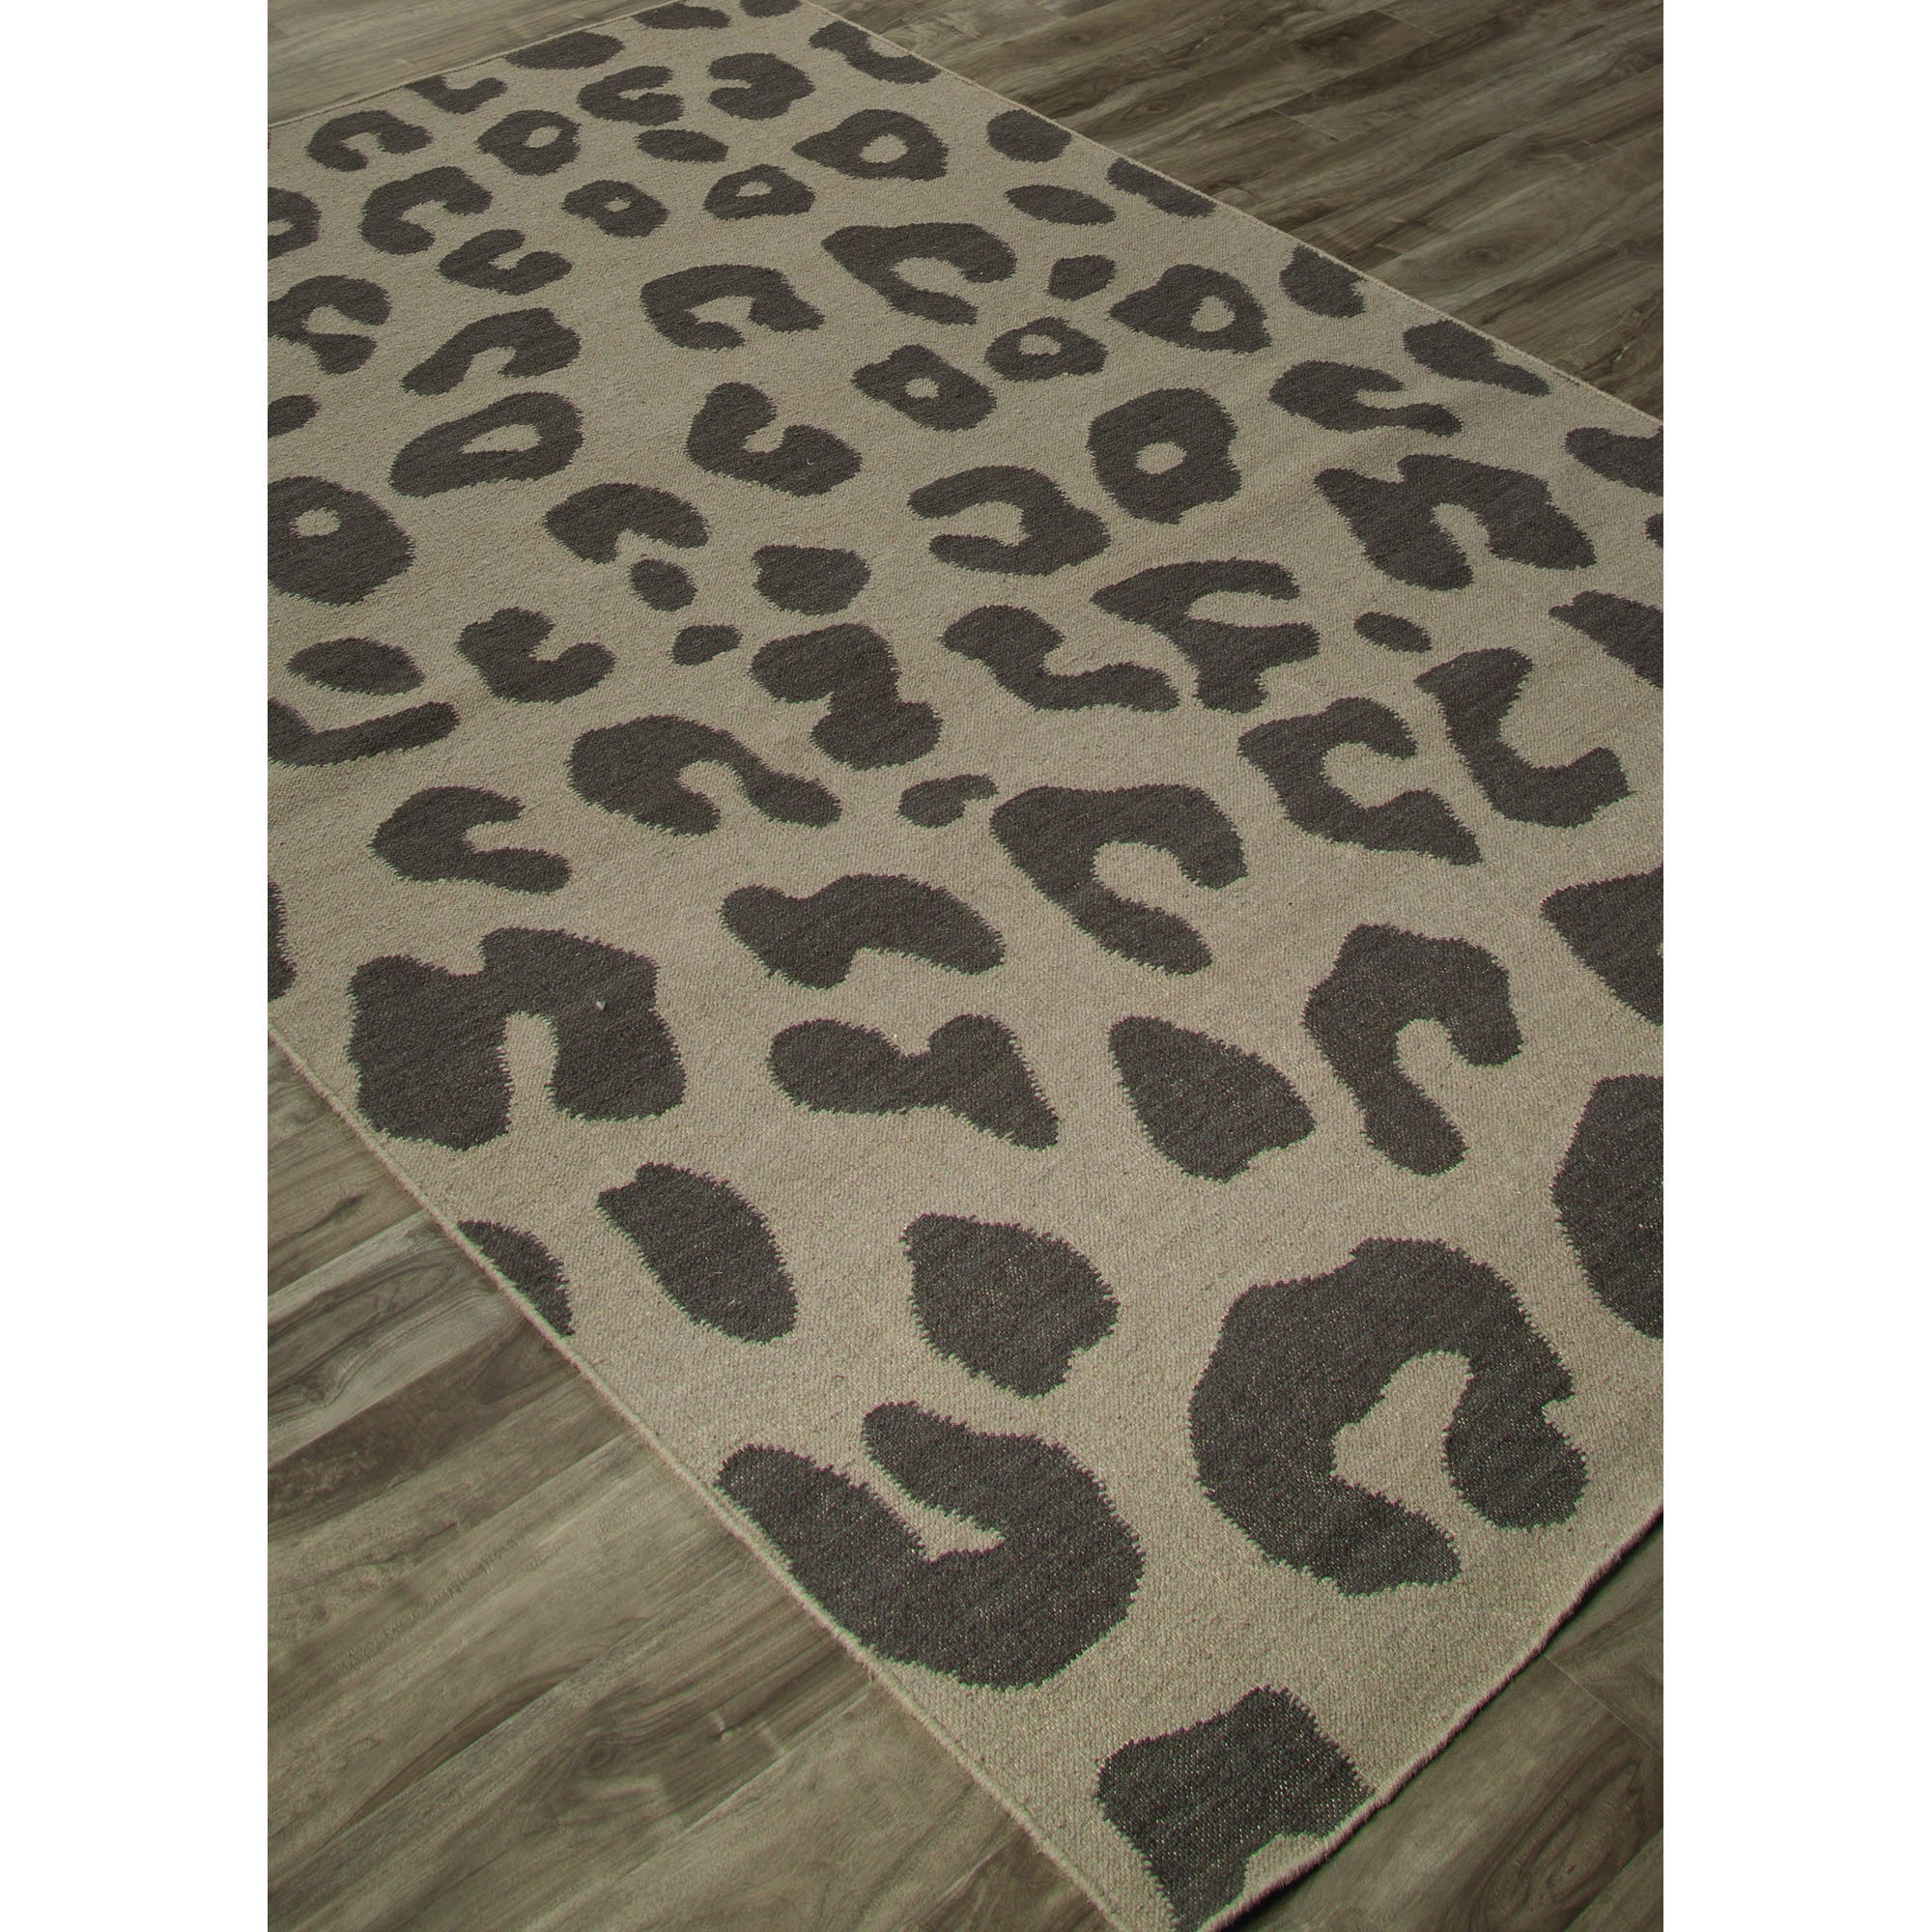 Jaipur Rugs FlatWeave Animal Print Pattern Dark Gray Wool